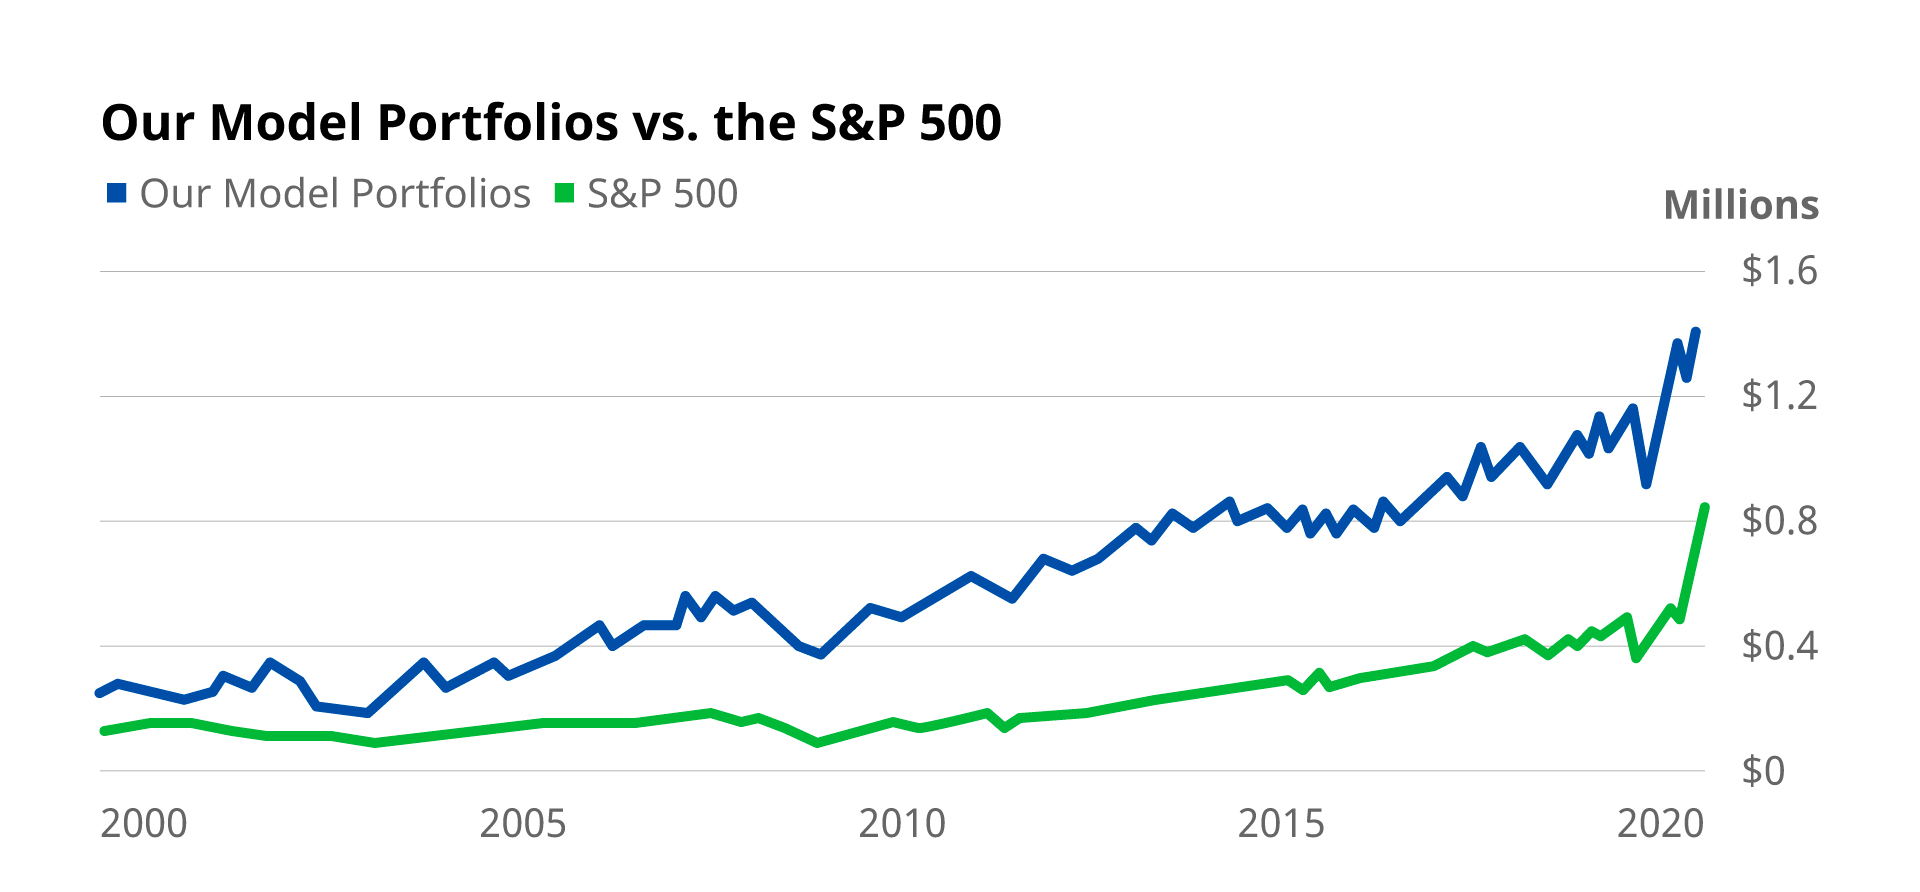 Oxford Model Portfolios vs. the S&P 500